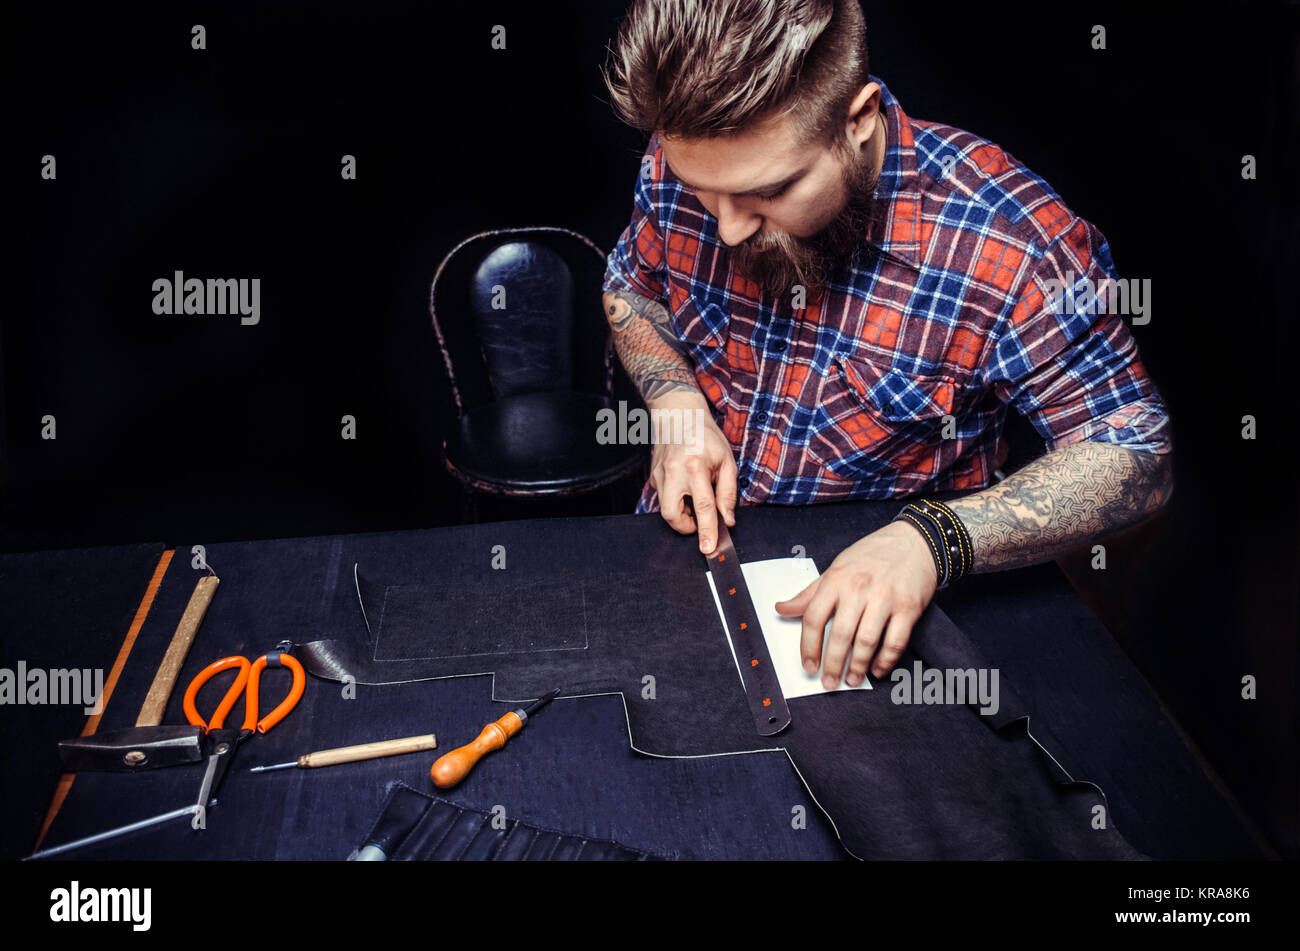 Leather Currier creating new leatherwork in the work area./Currier of leather processes a workpiece from leather - Stock Image